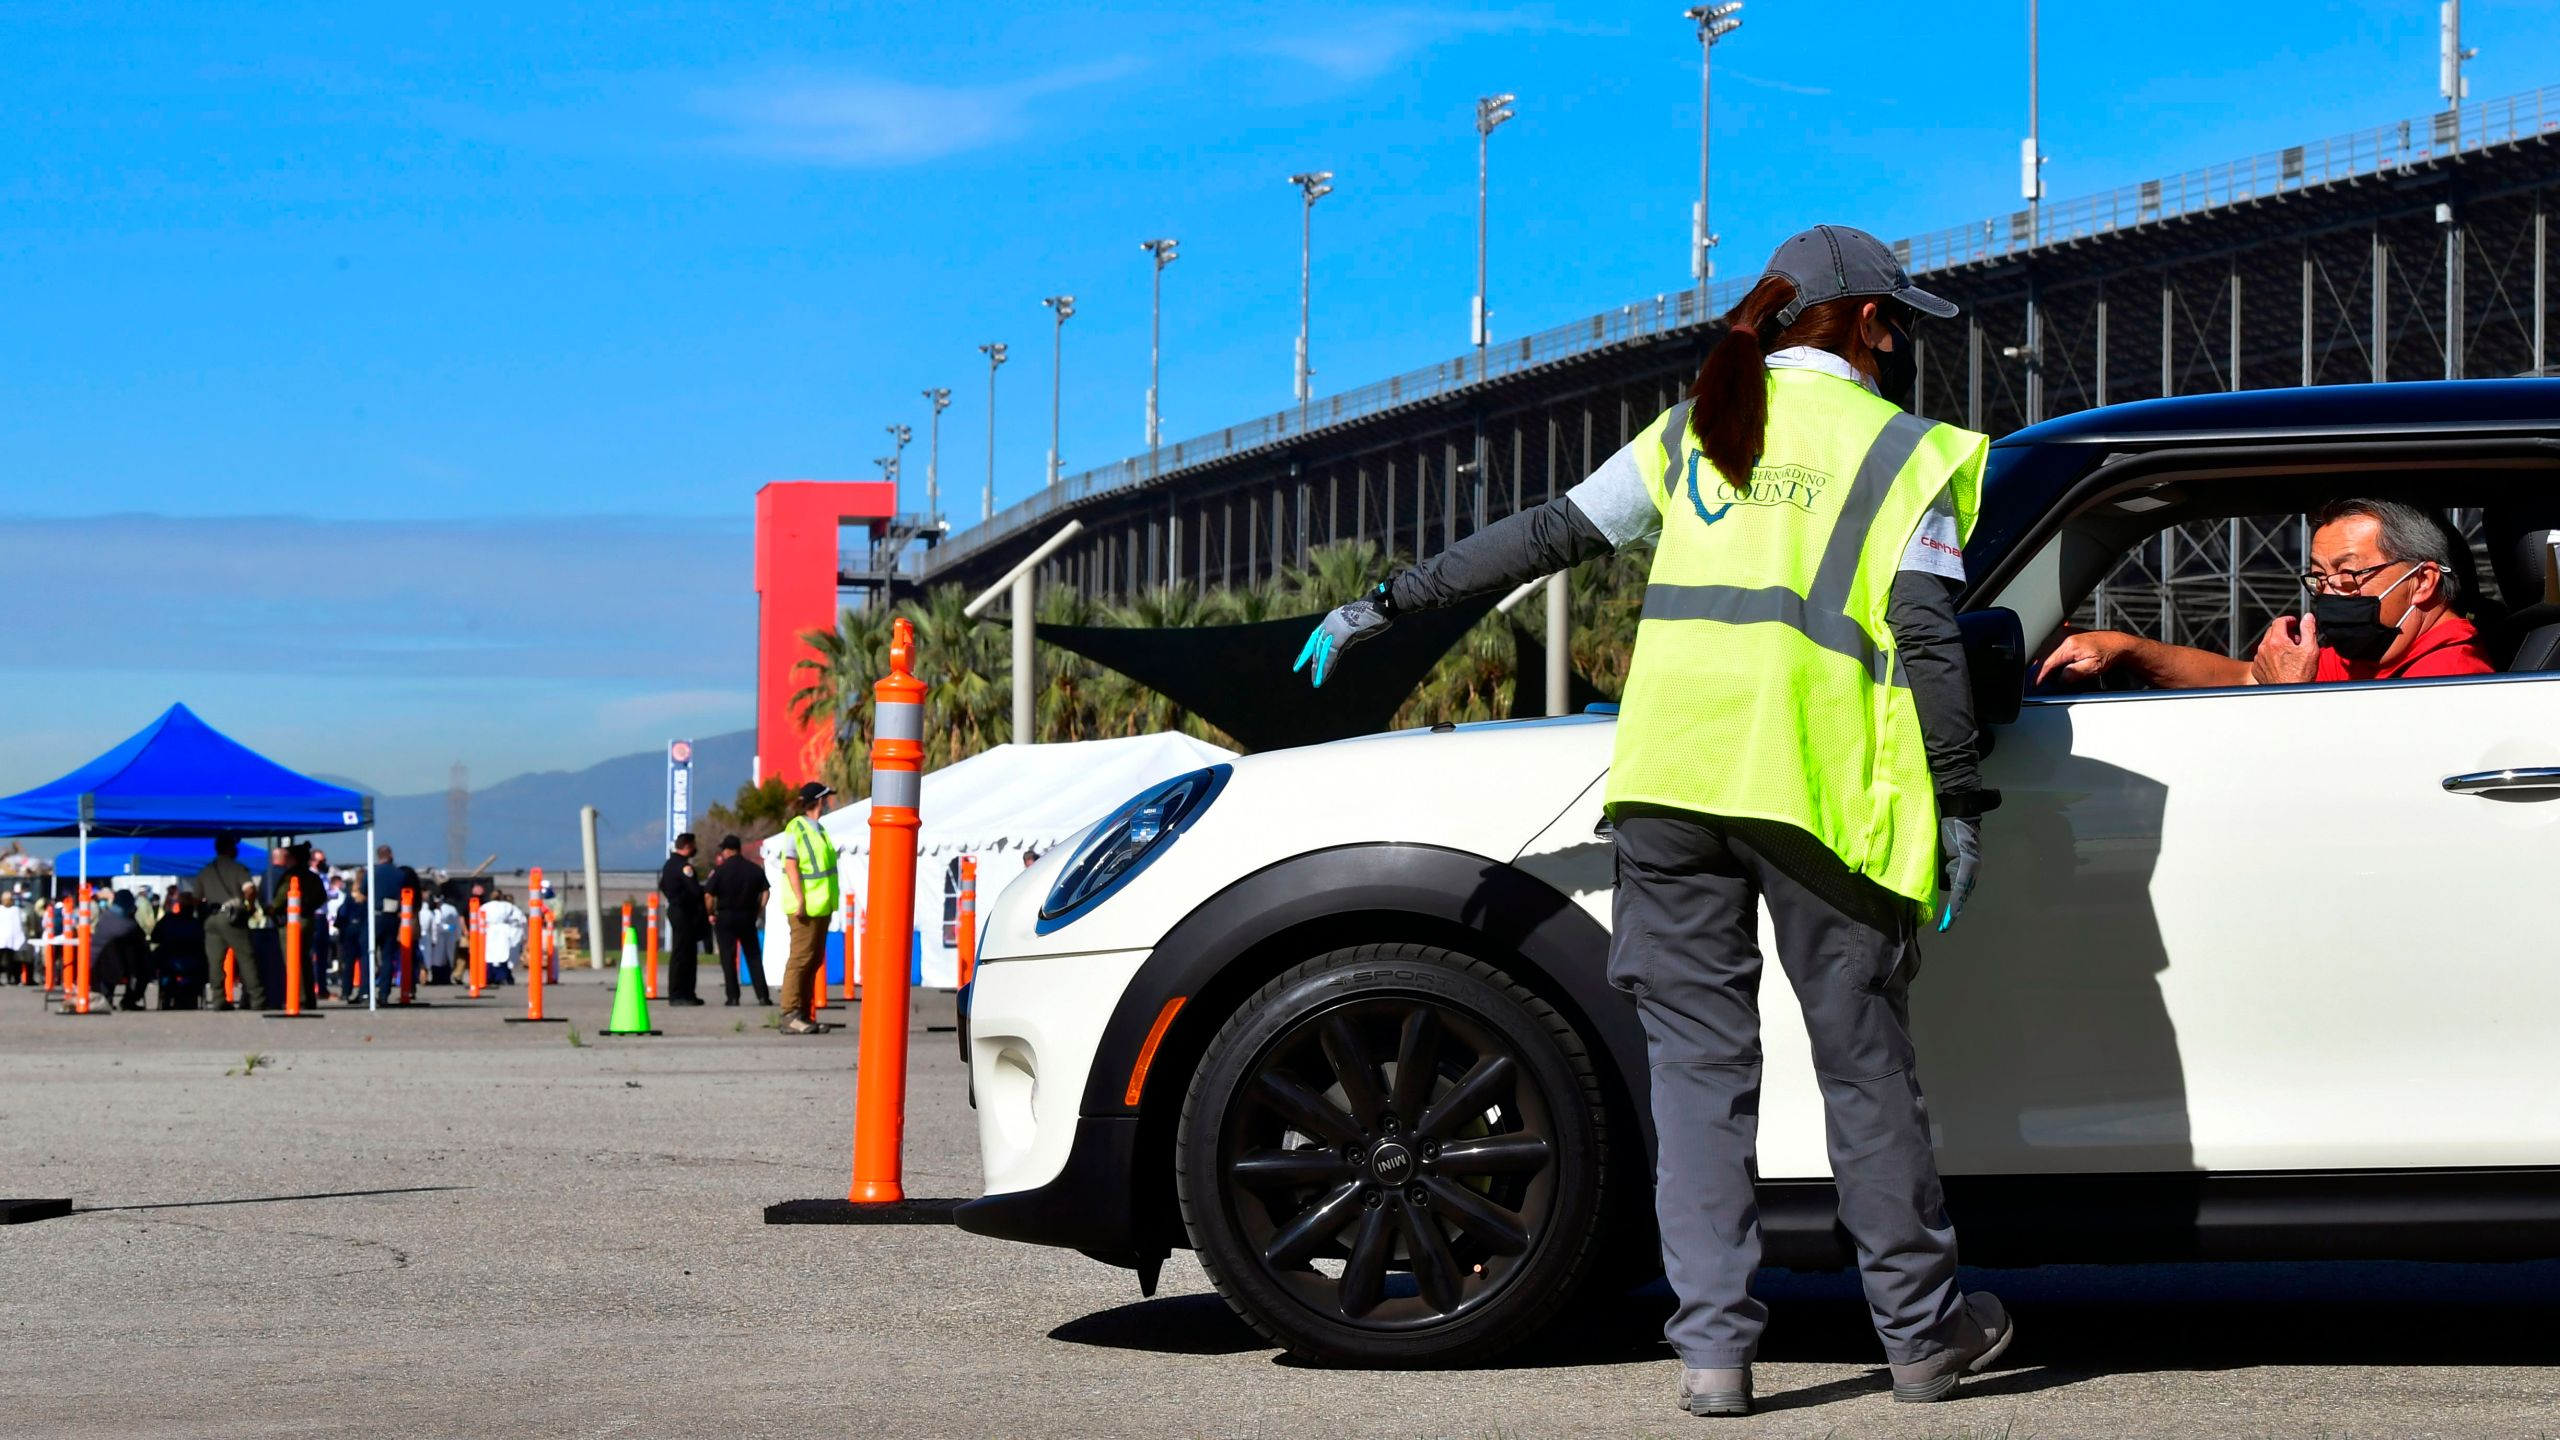 People arrive for their COVID-19 vaccine at the Auto Club Speedway in Fontana on Feb. 2, 2021. (Frederic J. Brown / AFP / Getty Images)